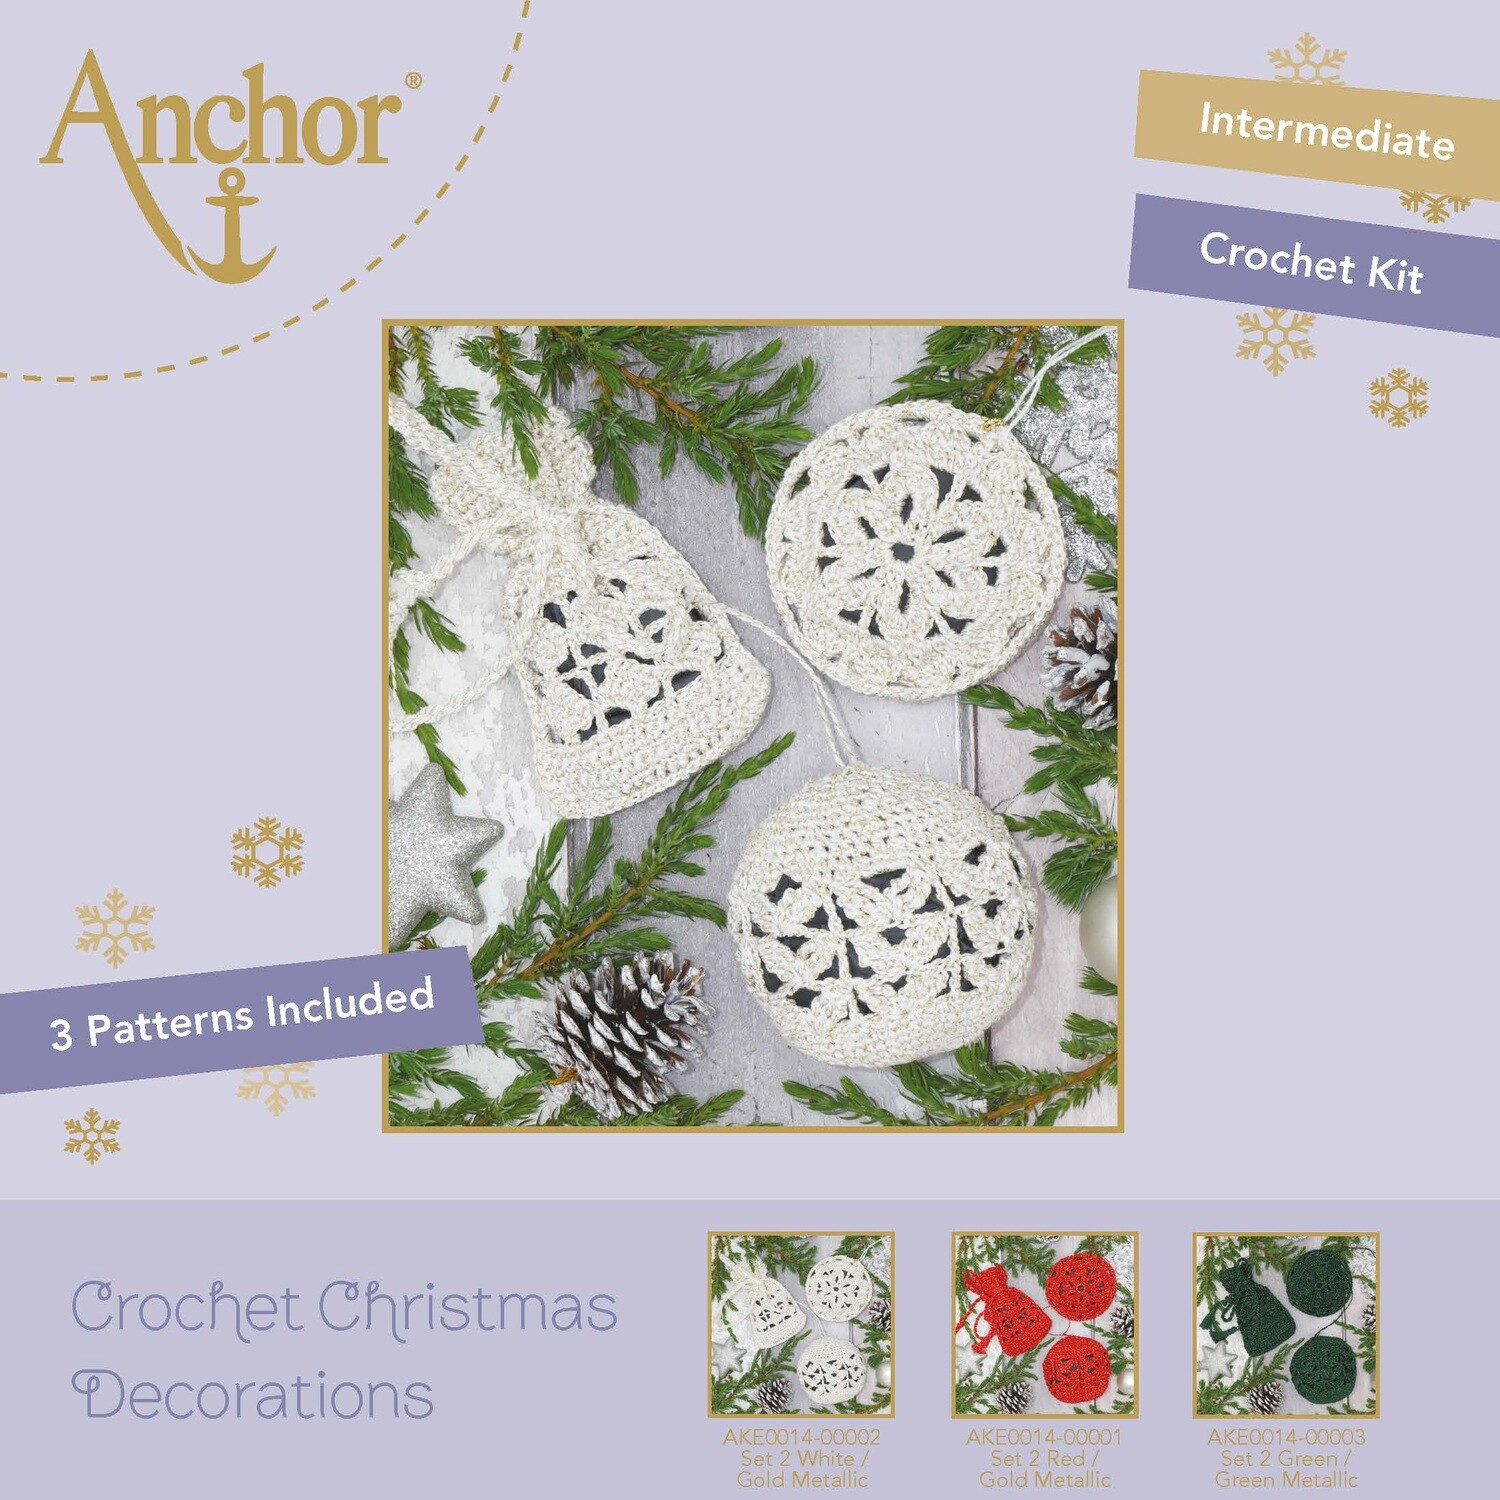 Crochet Christmas Decorations - Set 2 White/Gold Metallic